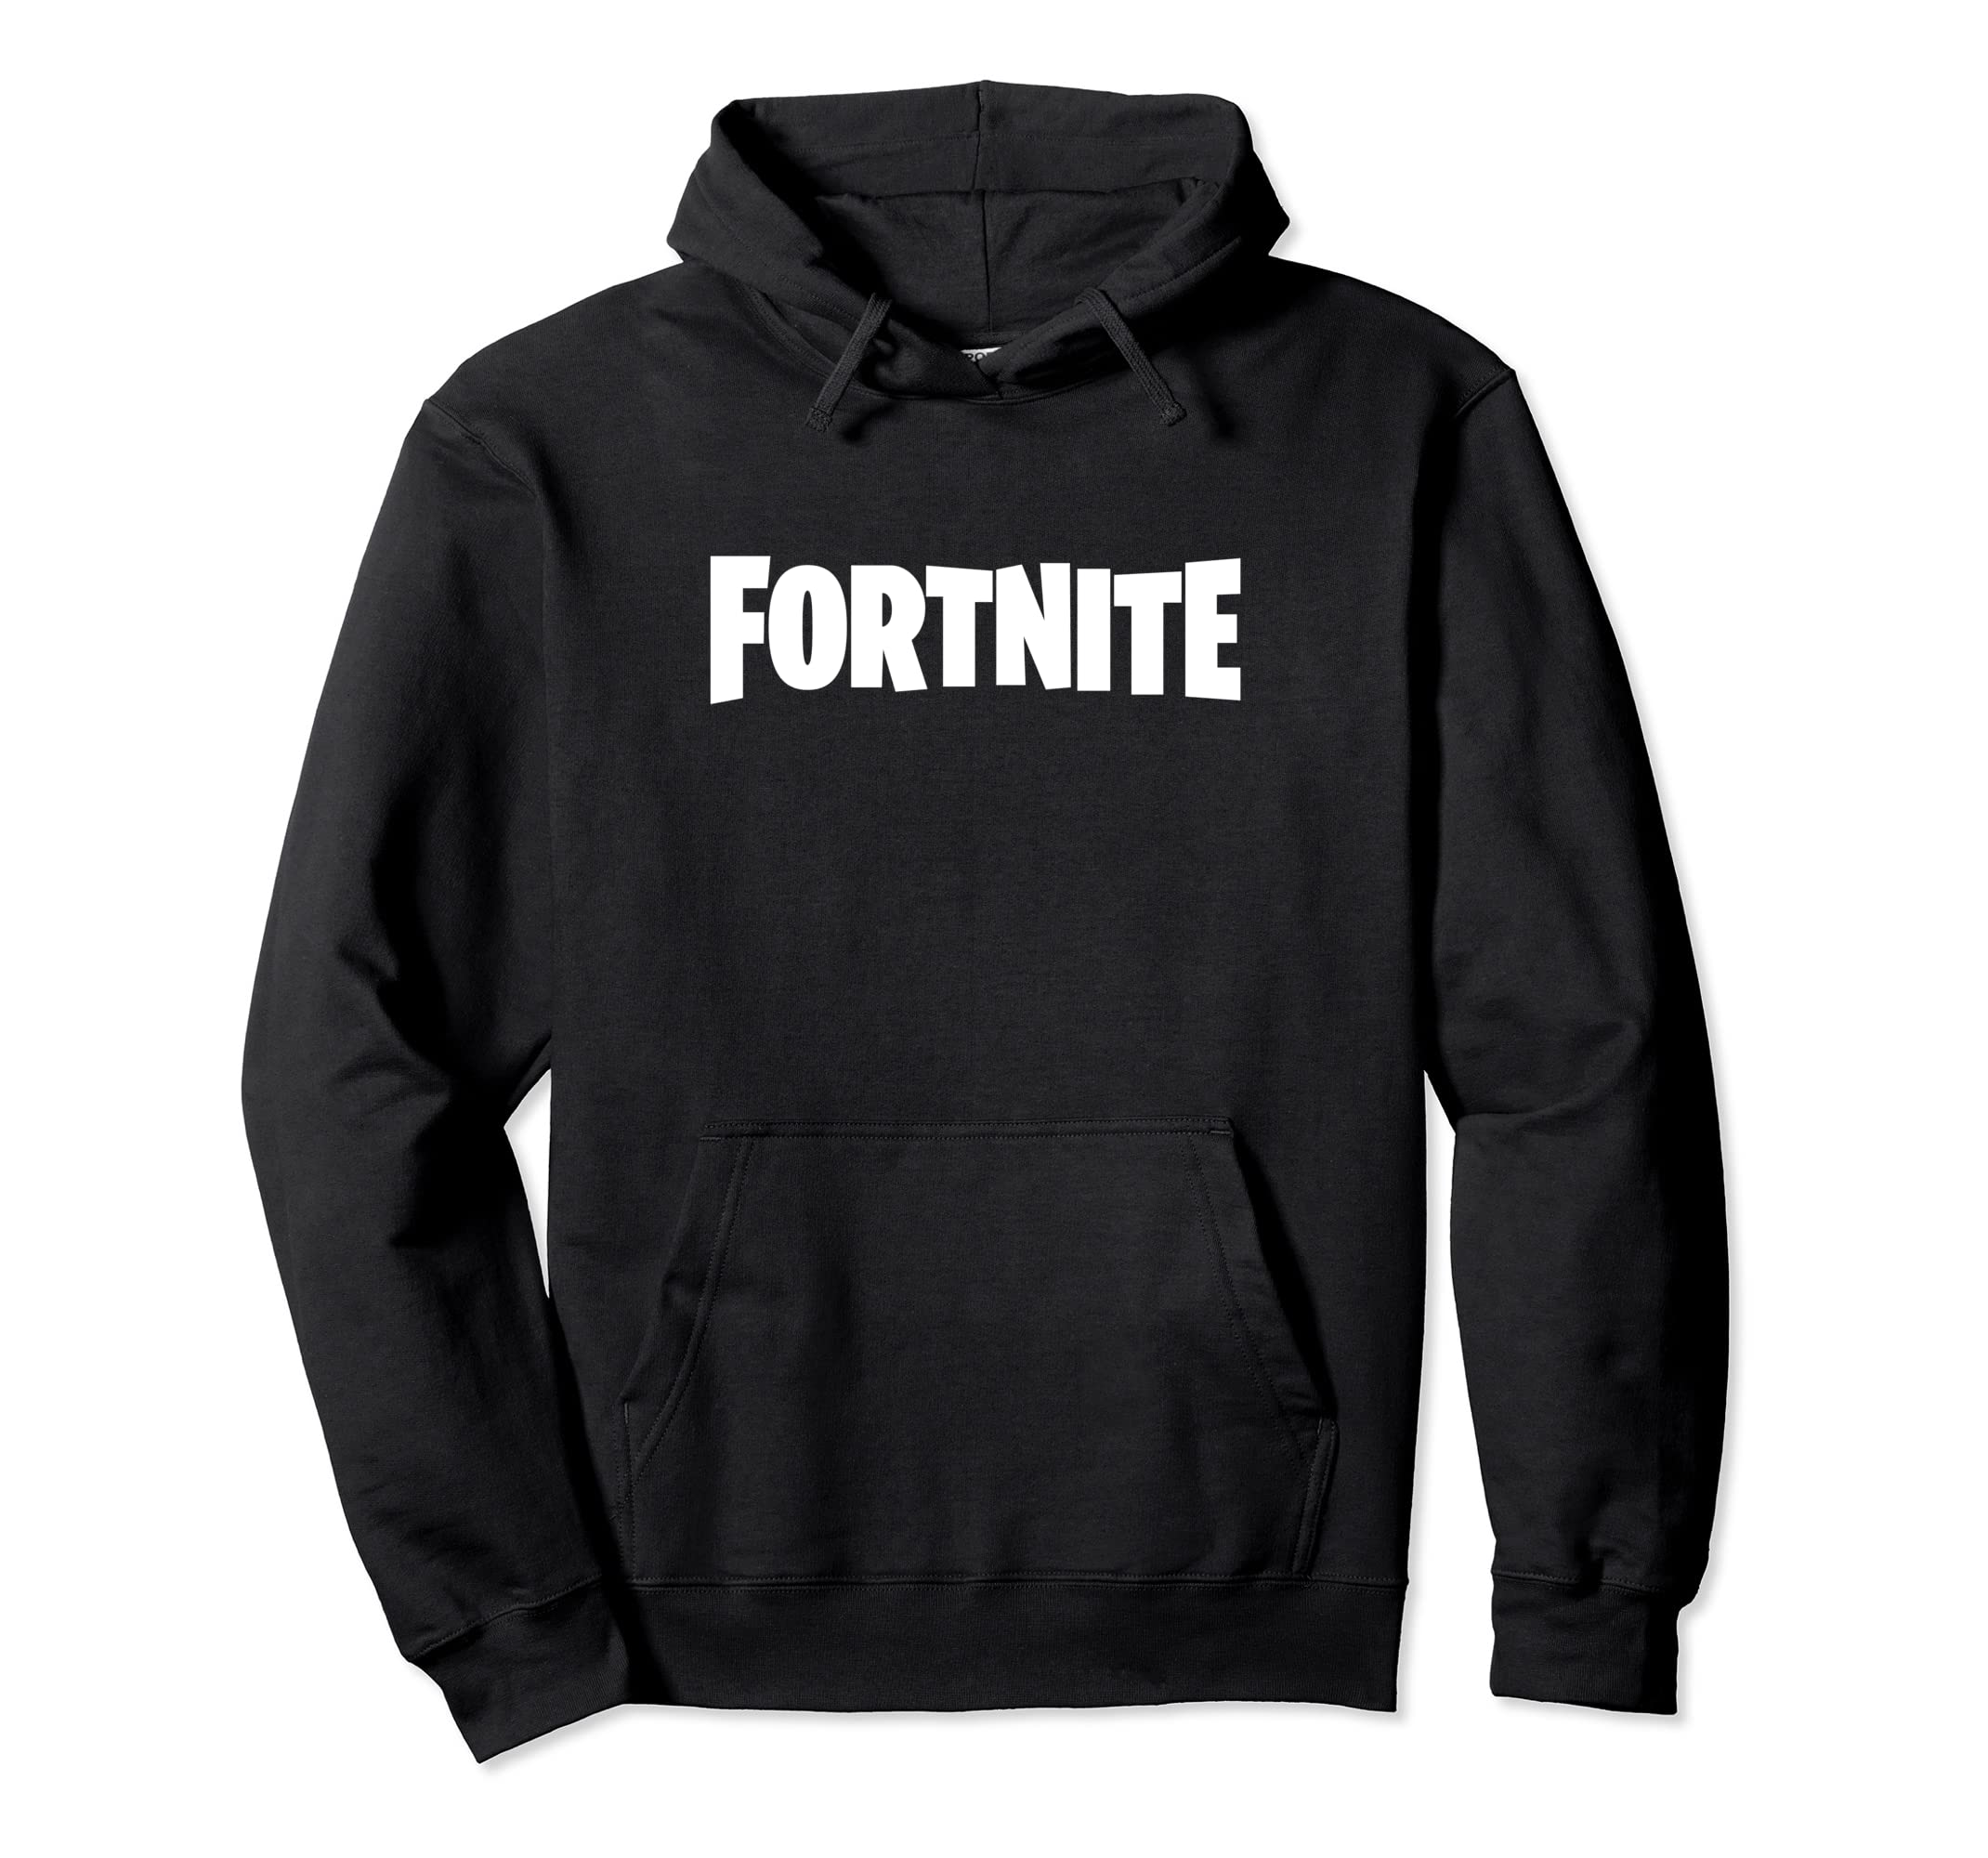 66dc0e3a10e Amazon.com  Fortnite White Logo Hoodie  Clothing